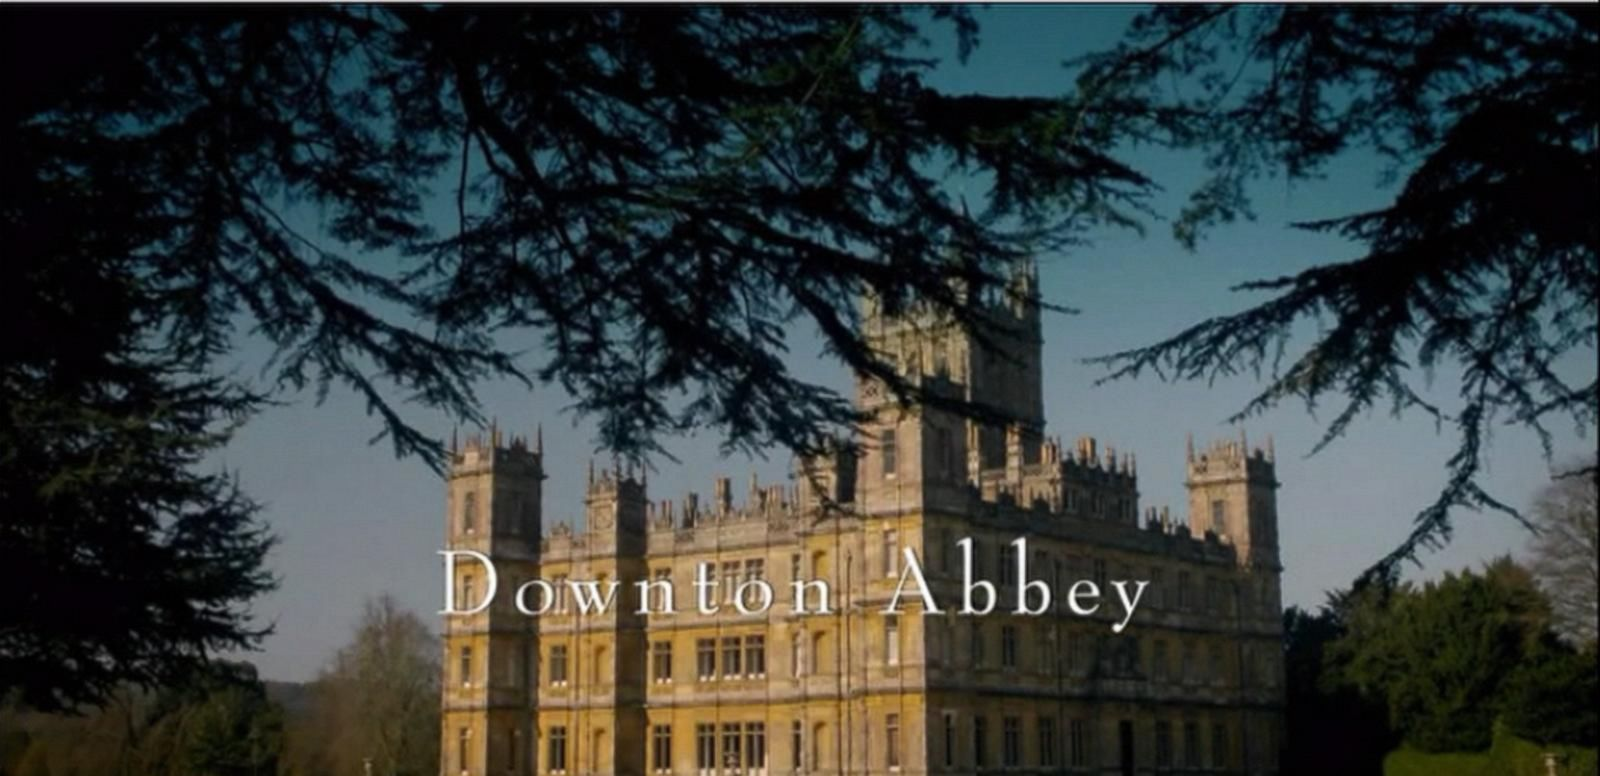 VIDEO: 'Downton Abbey' Will End After Next Season